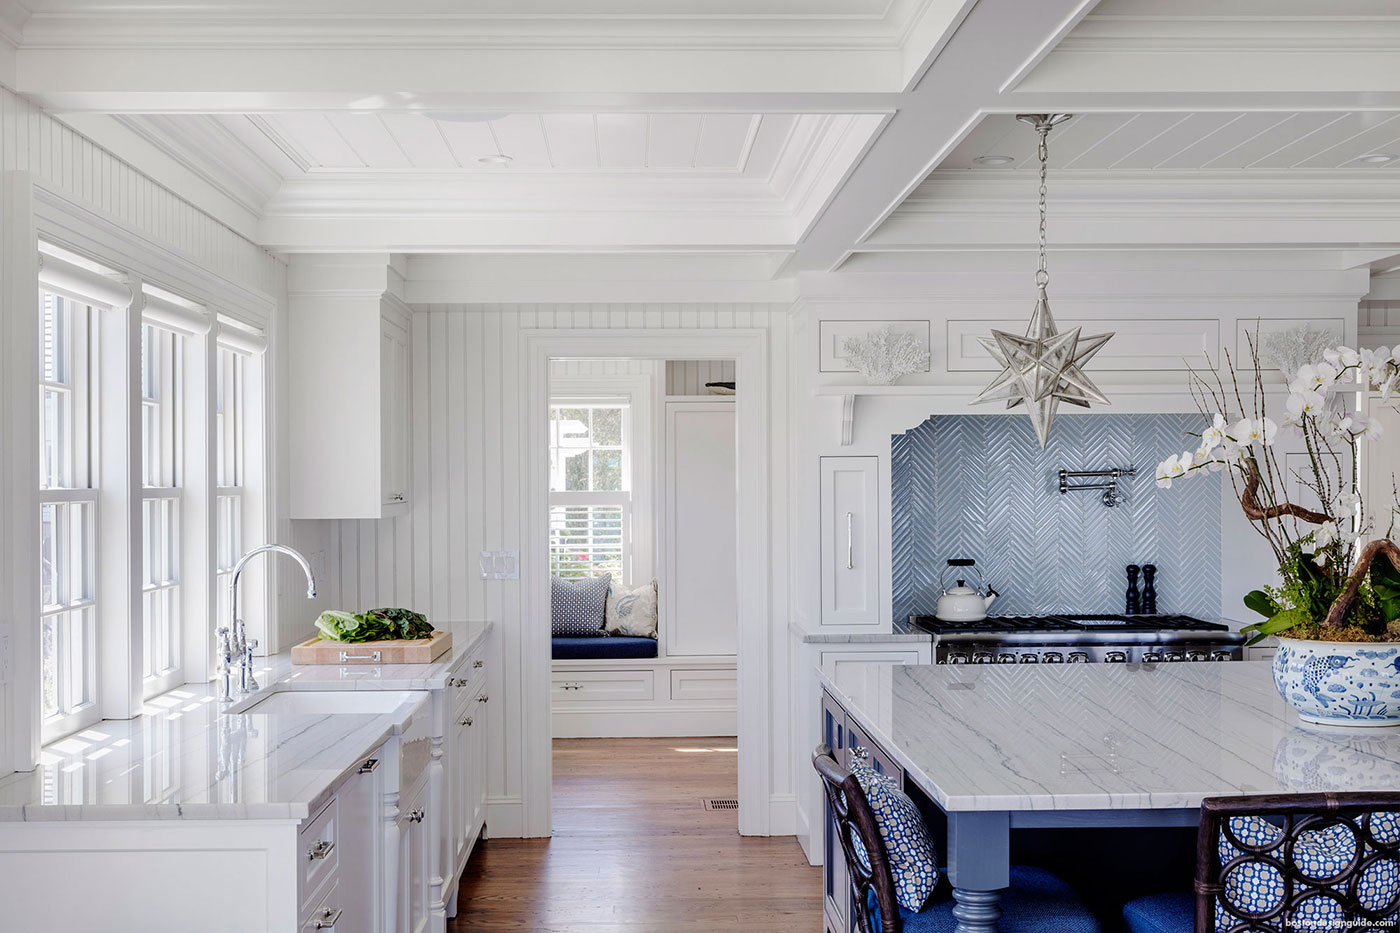 Blue and white high-end kitchen